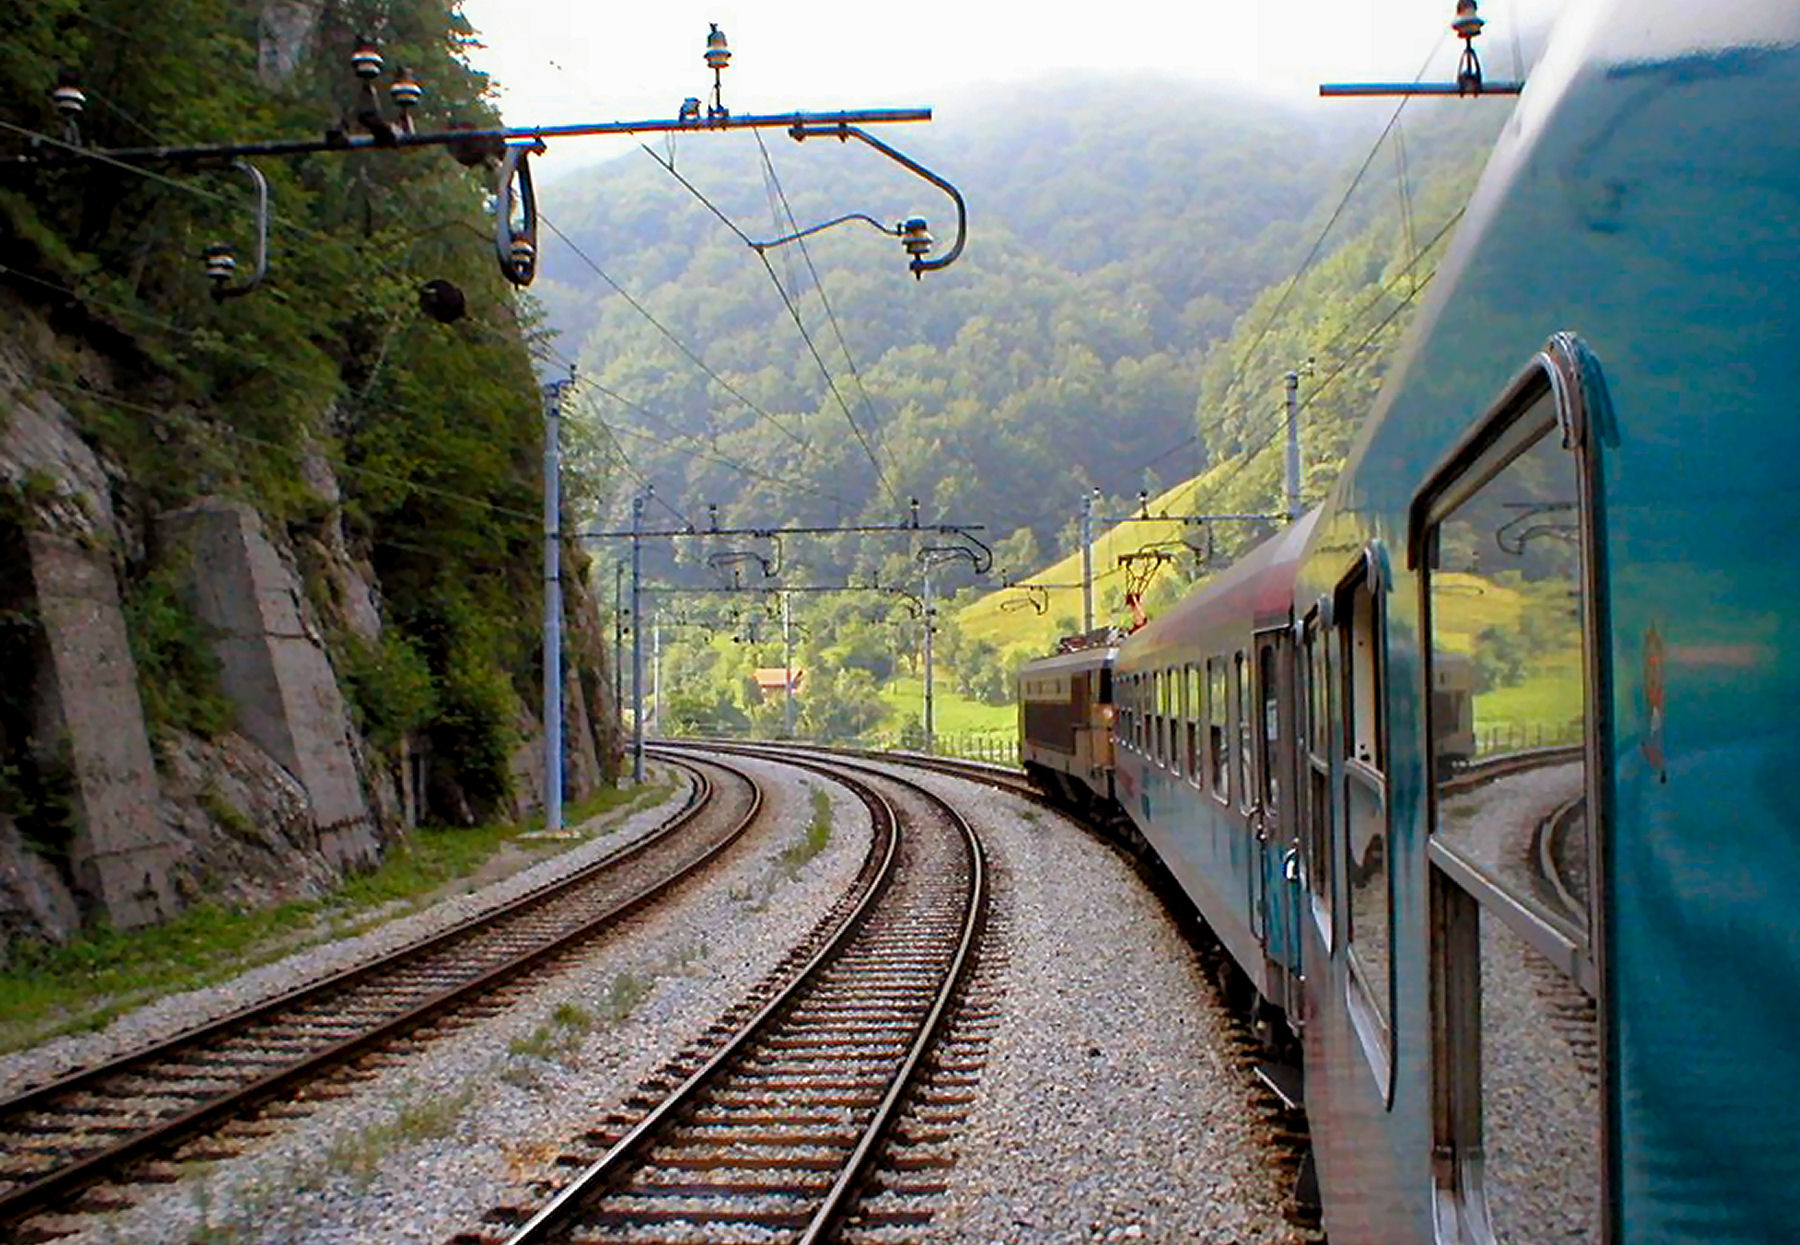 Trains to Slovenia run every day from numerous European cities